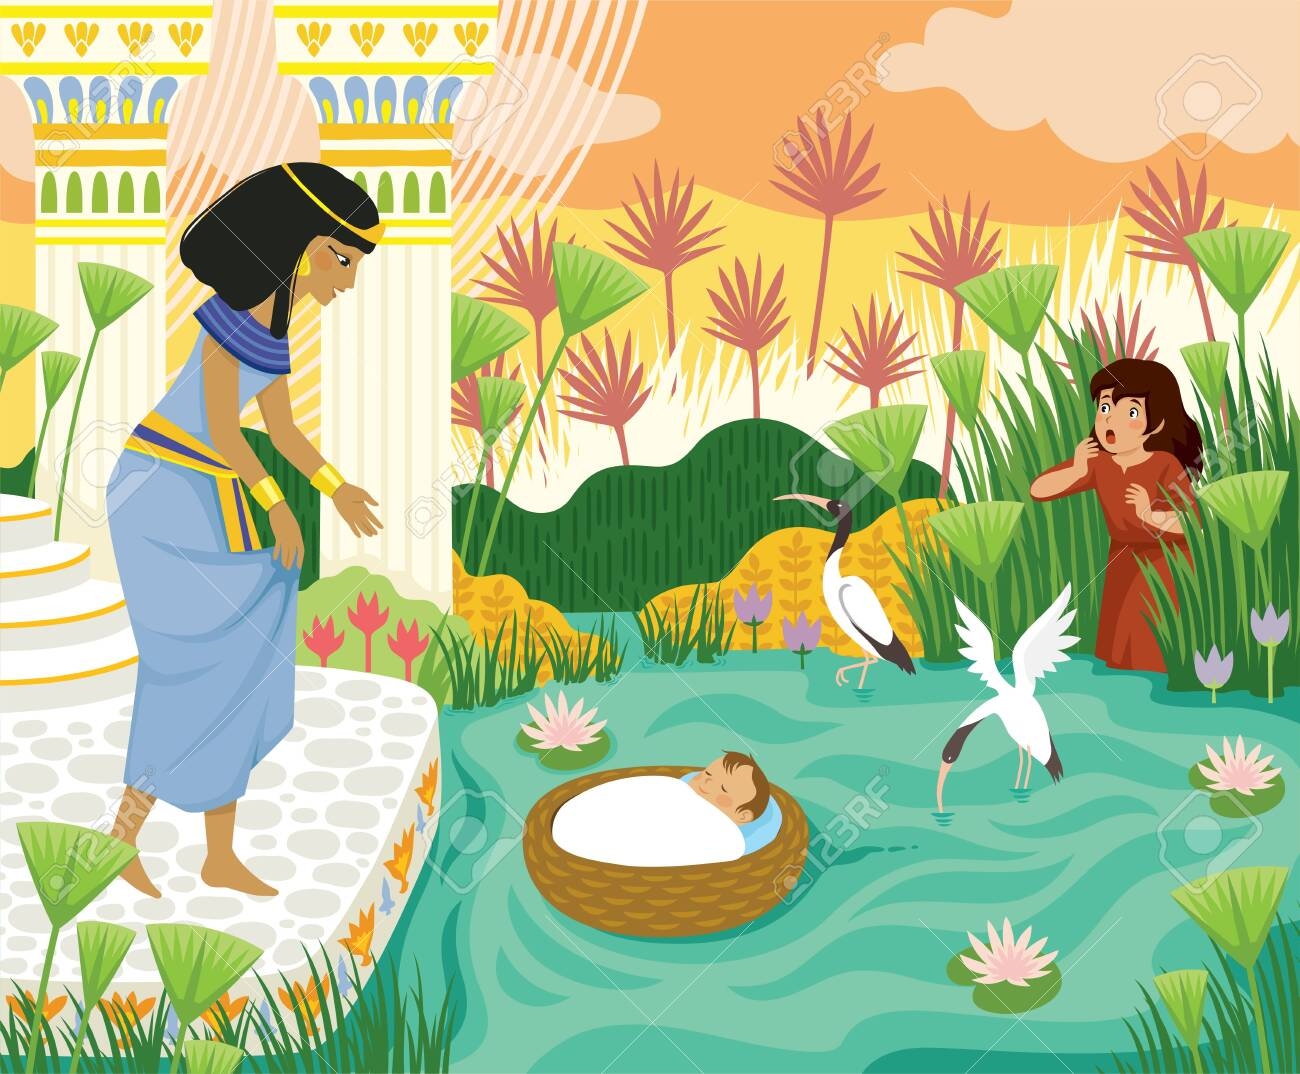 Passover biblical story of baby Moses in the basket floating on the Nile towards Pharaohs daughter with his sister Miriam watching behind the papyrus. - 143513821